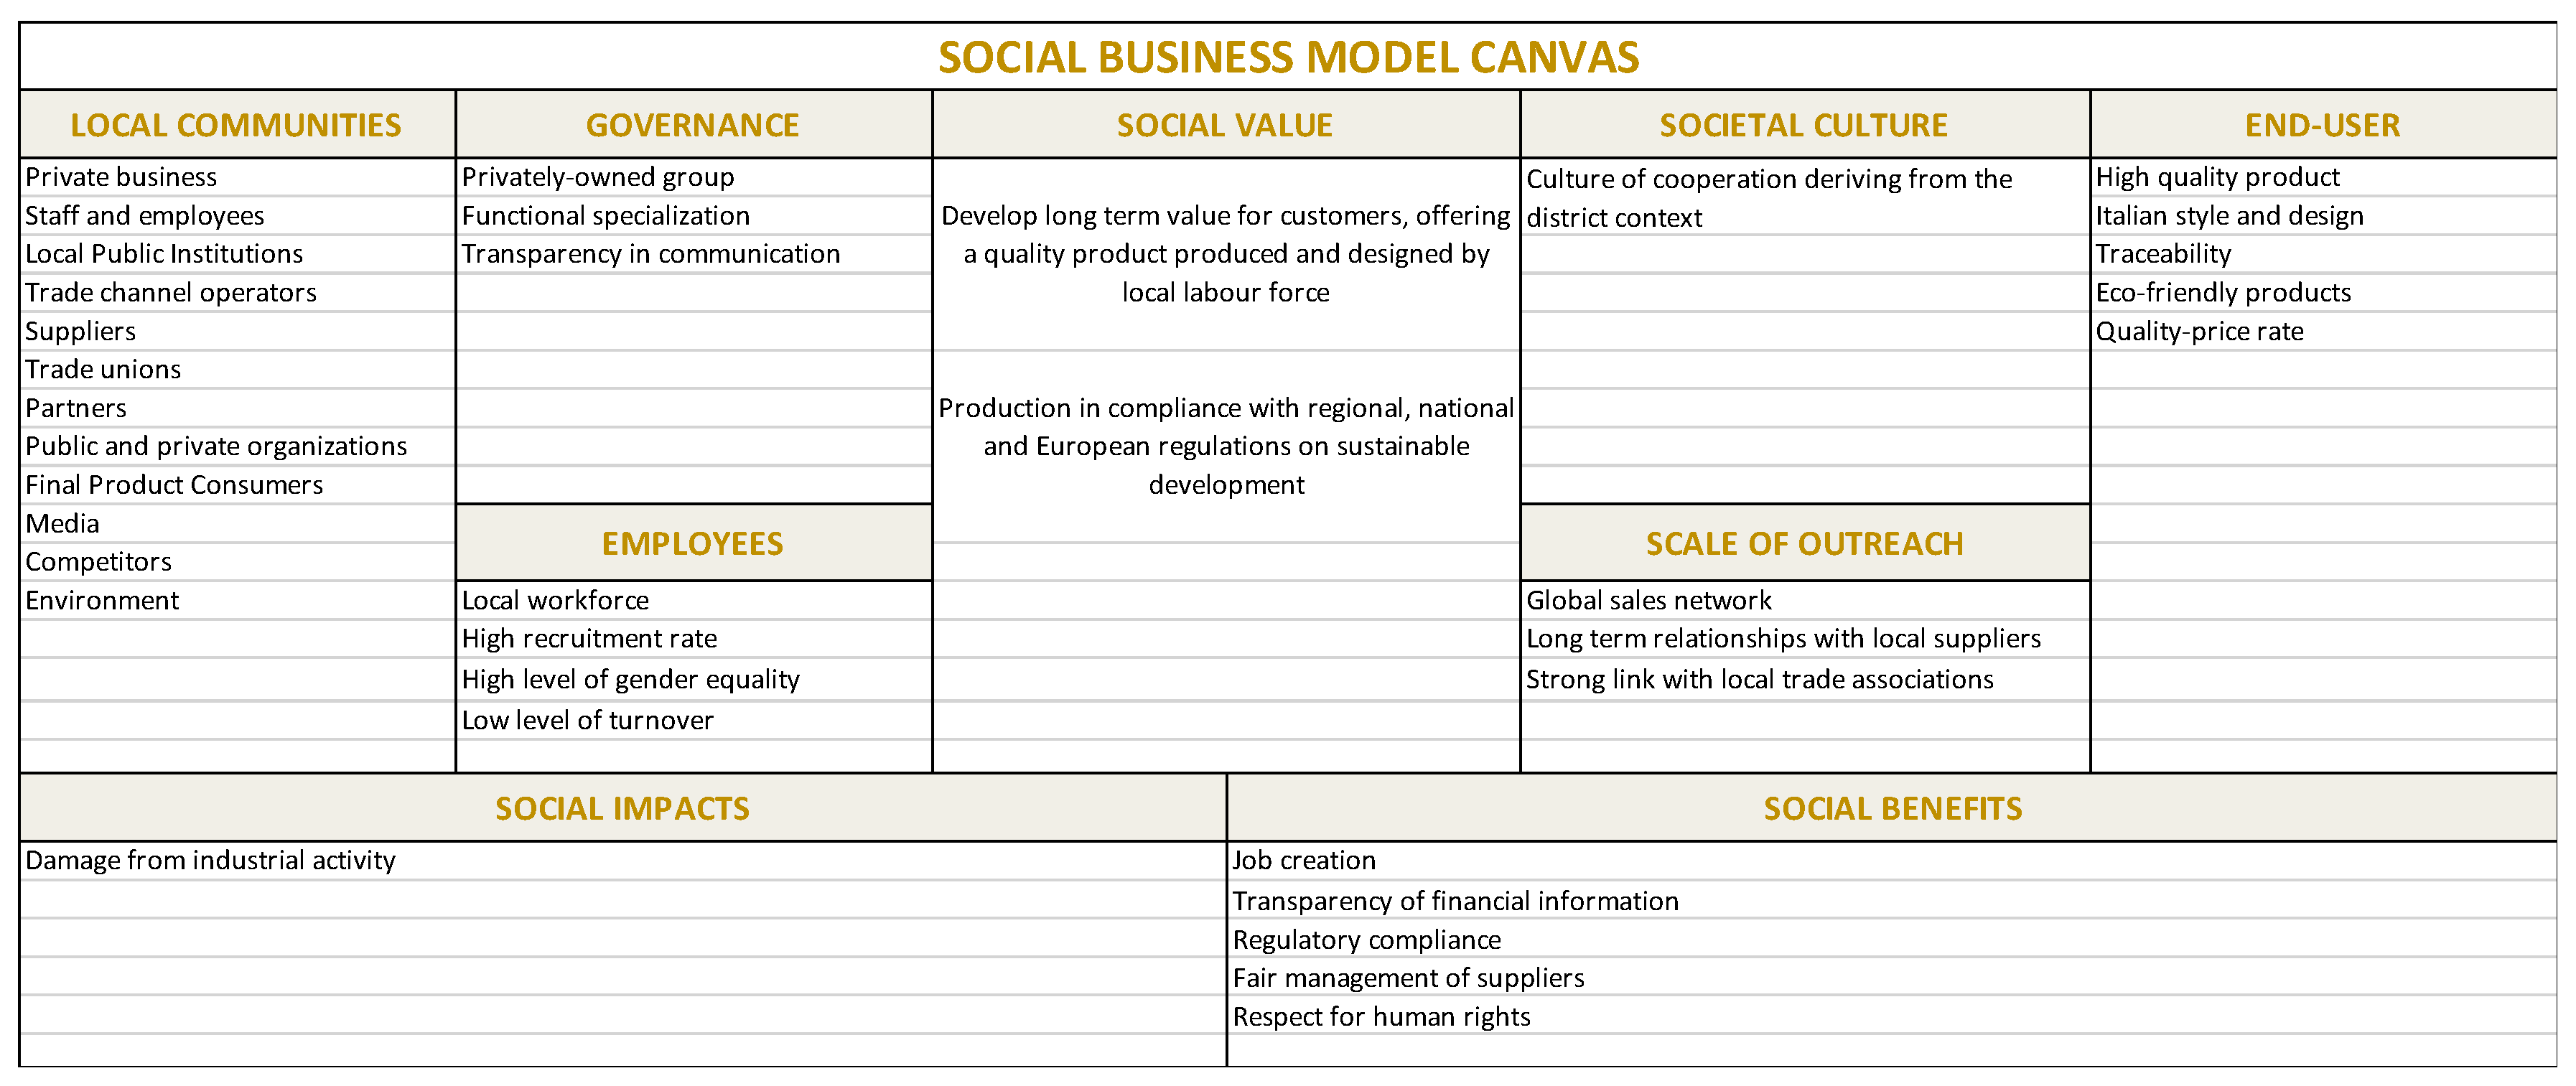 Sustainability Free Full Text Sustainability Transition In Industry 4 0 And Smart Manufacturing With The Triple Layered Business Model Canvas